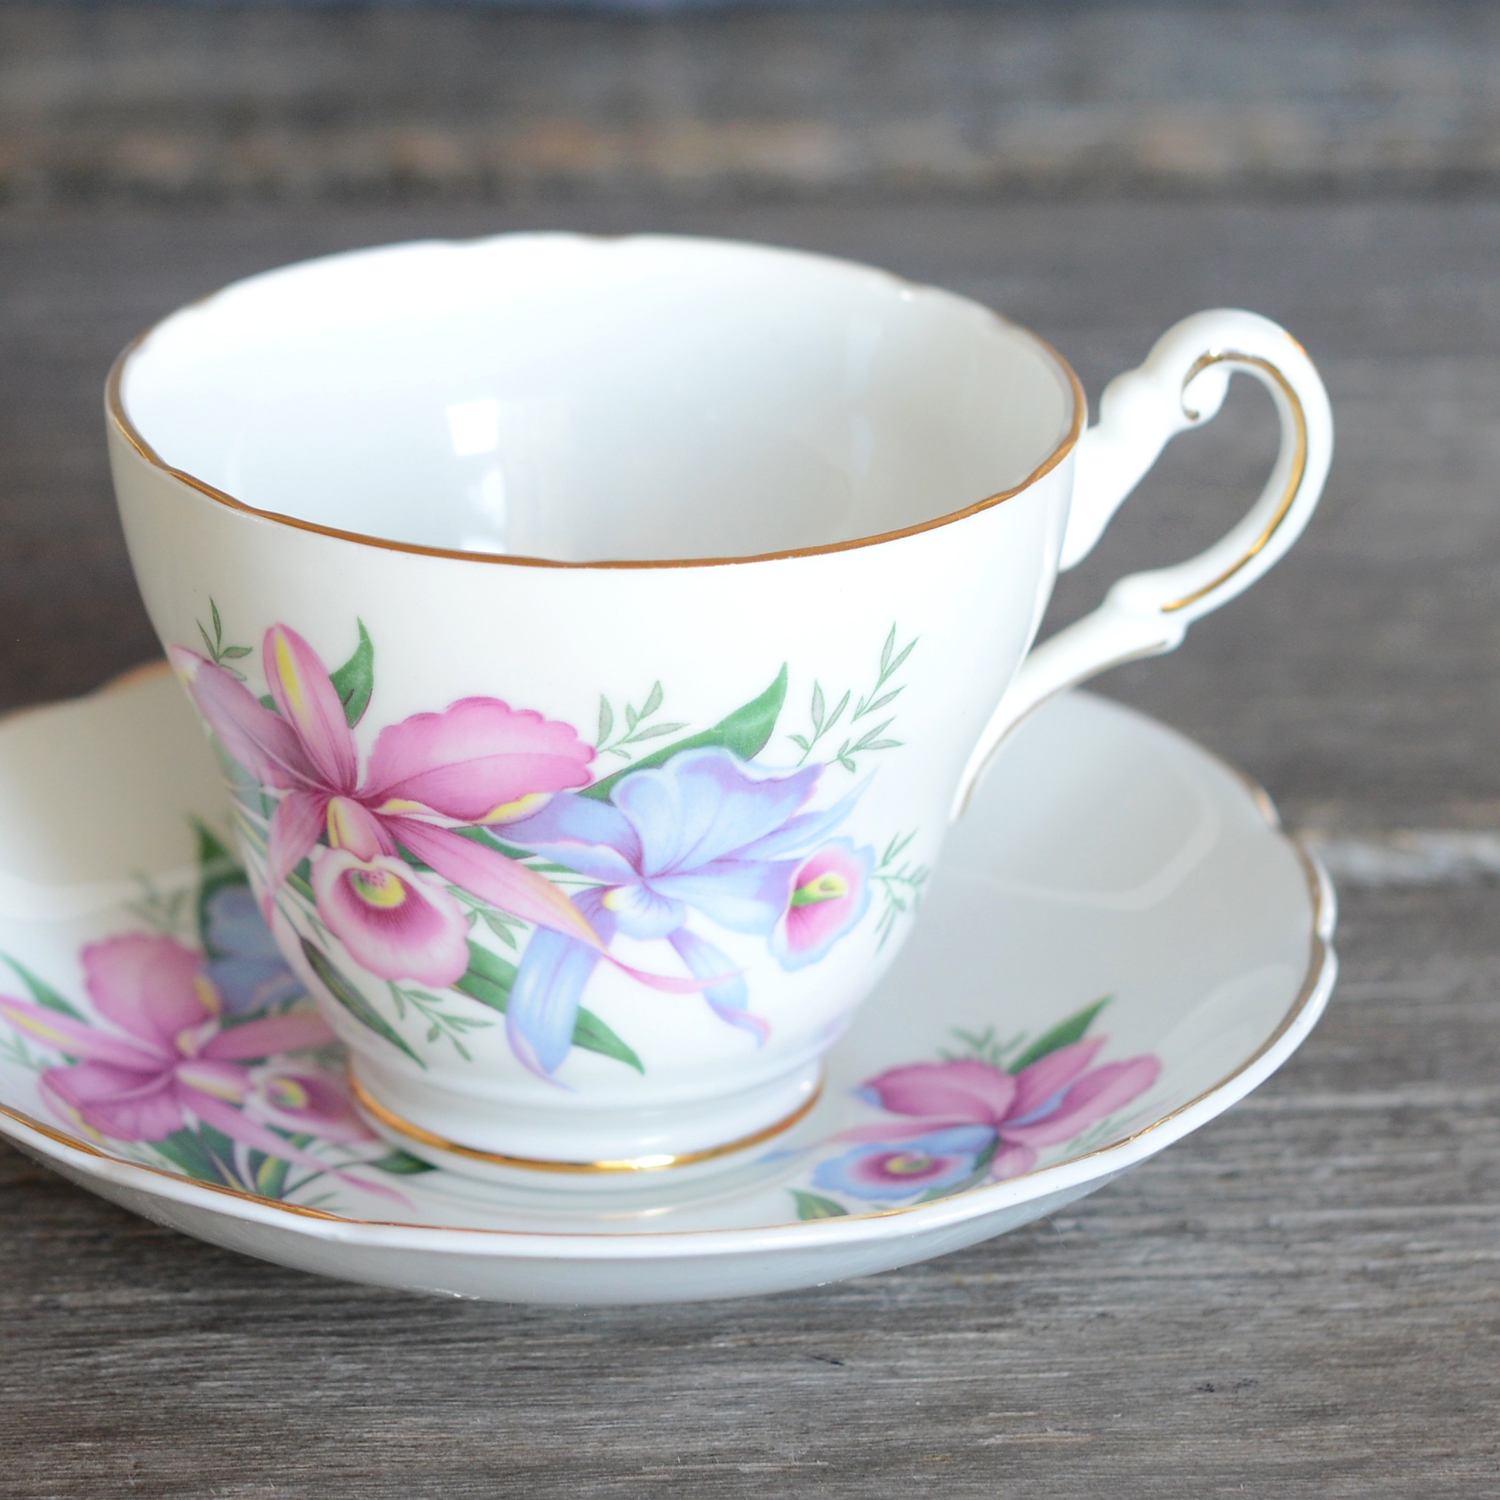 tottle tea cup and saucer